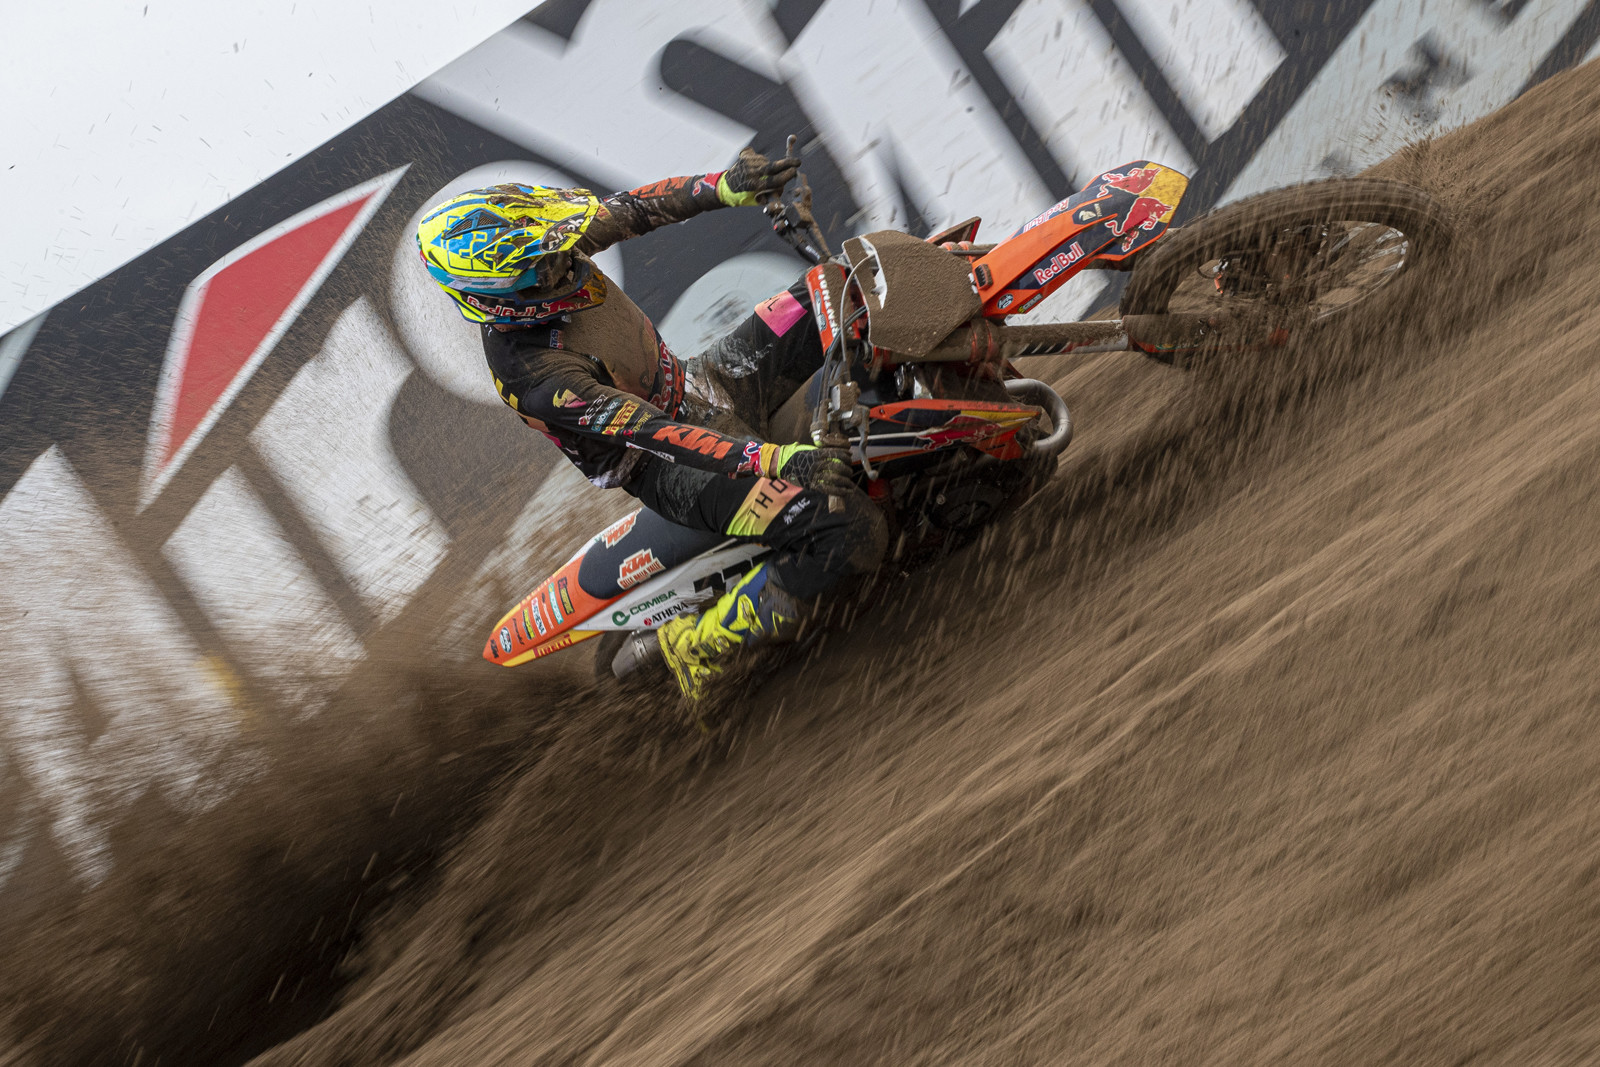 """Tony Cairoli: """"We expected a better result here. We've had some good races in the past, so I'm a bit disappointed. Again, we struggled in the Timed Practice and from my gate-pick I was pushed out in both starts and was outside the top ten. In the first moto I even crashed on the first lap. I came back to 13th but for sure is not what I am capable of on this track. In the second moto I tagged onto the back of [Gautier] Paulin and we had a good rhythm. I finished 6th but we want to be much closer to the podium. We have to see what we can improve for Wednesday."""""""